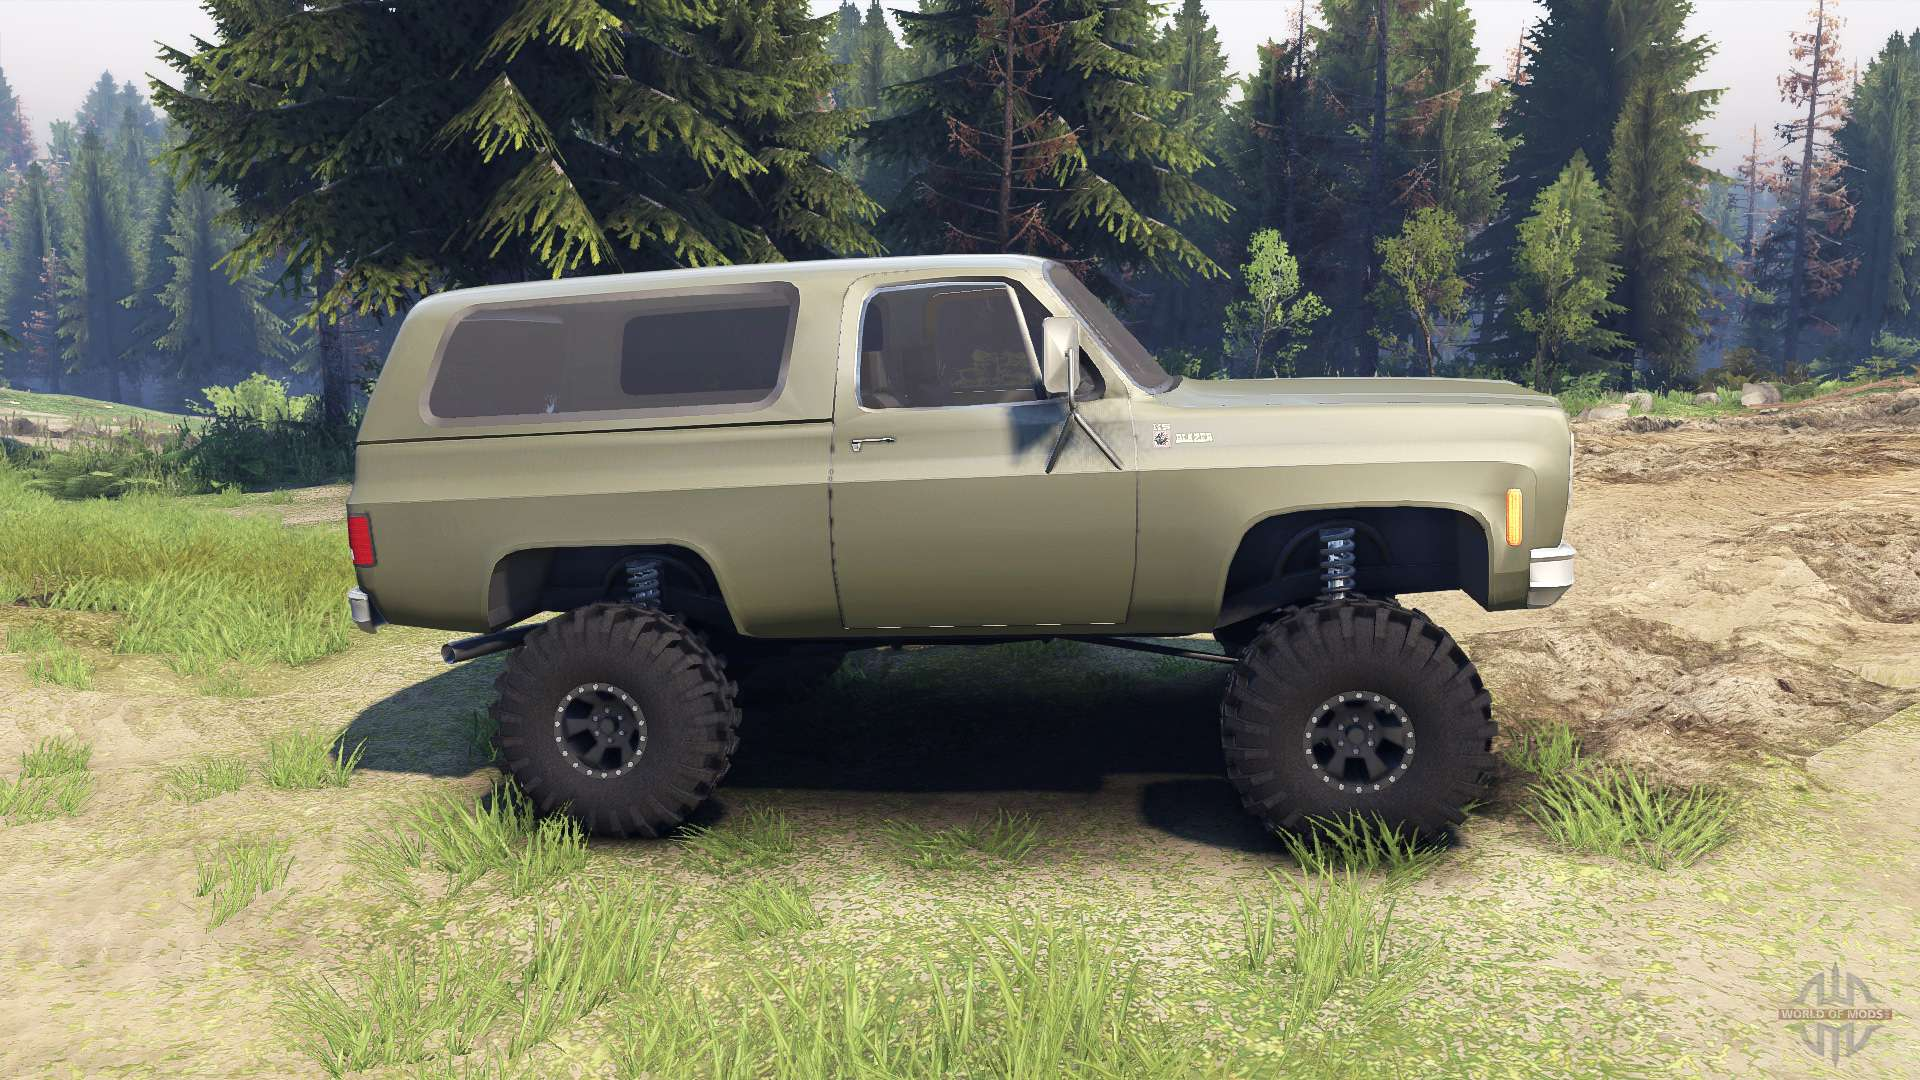 1972 Chevy K5 Blazer Lifted 4x4 23714125 likewise Watch besides Gallery2 moreover 1971 chevrolet c10 moreover Sold. on 1972 chevy 4x4